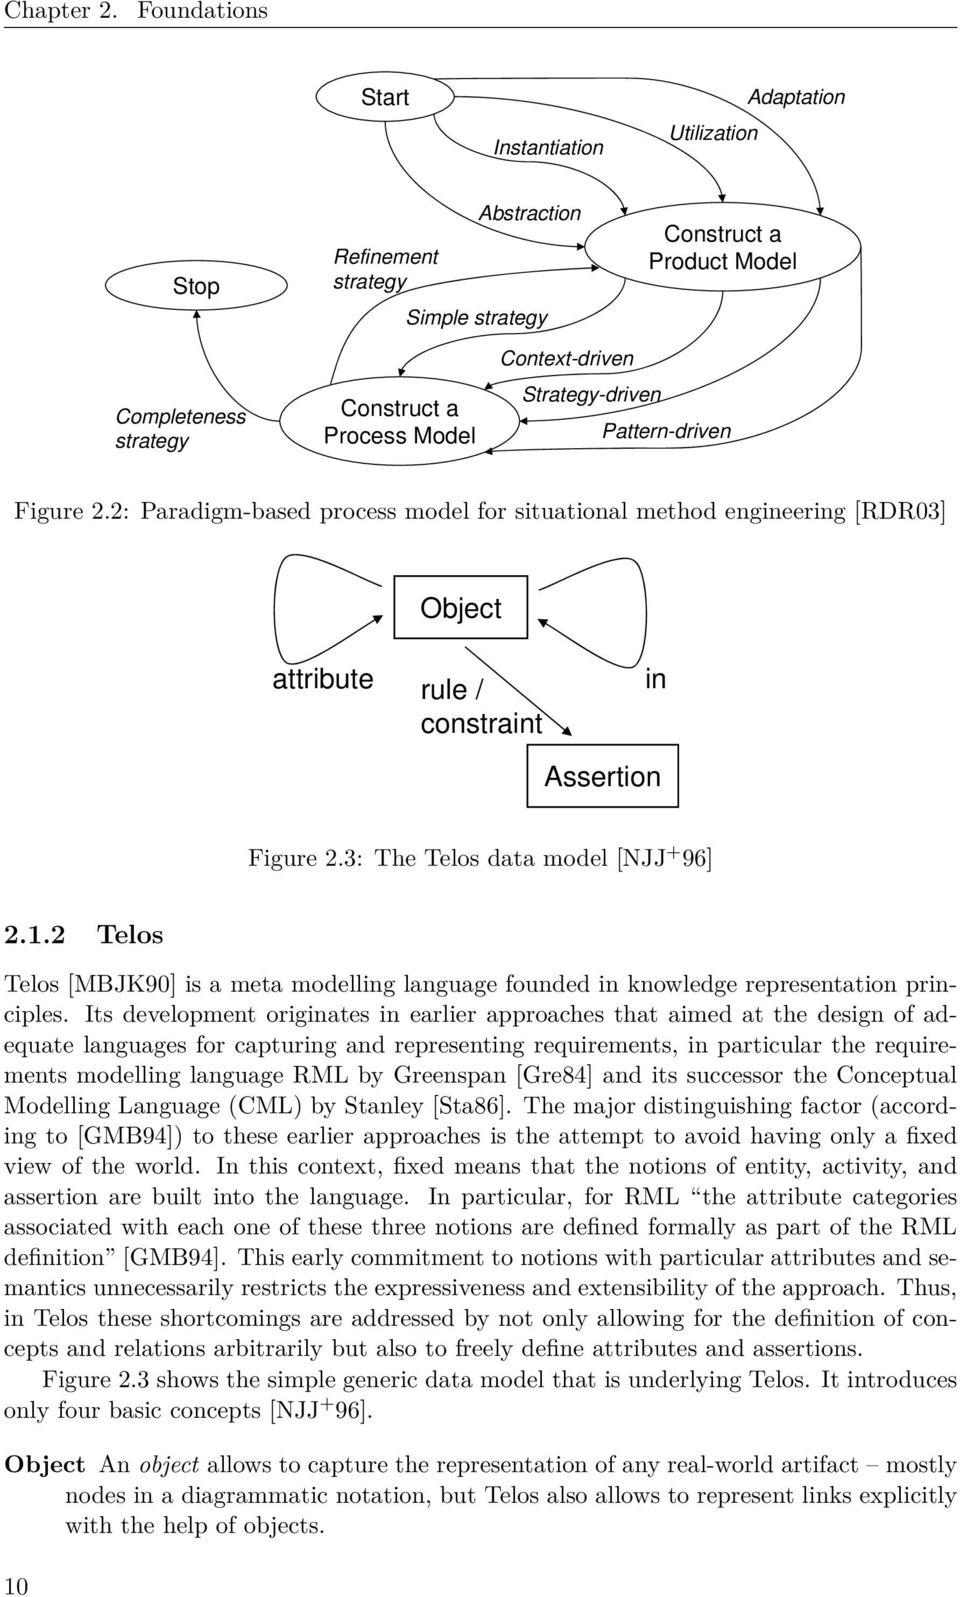 Strategy-driven Pattern-driven Figure 2.2: Paradigm-based process model for situational method engineering [RDR03] Object attribute rule / constraint in Assertion Figure 2.